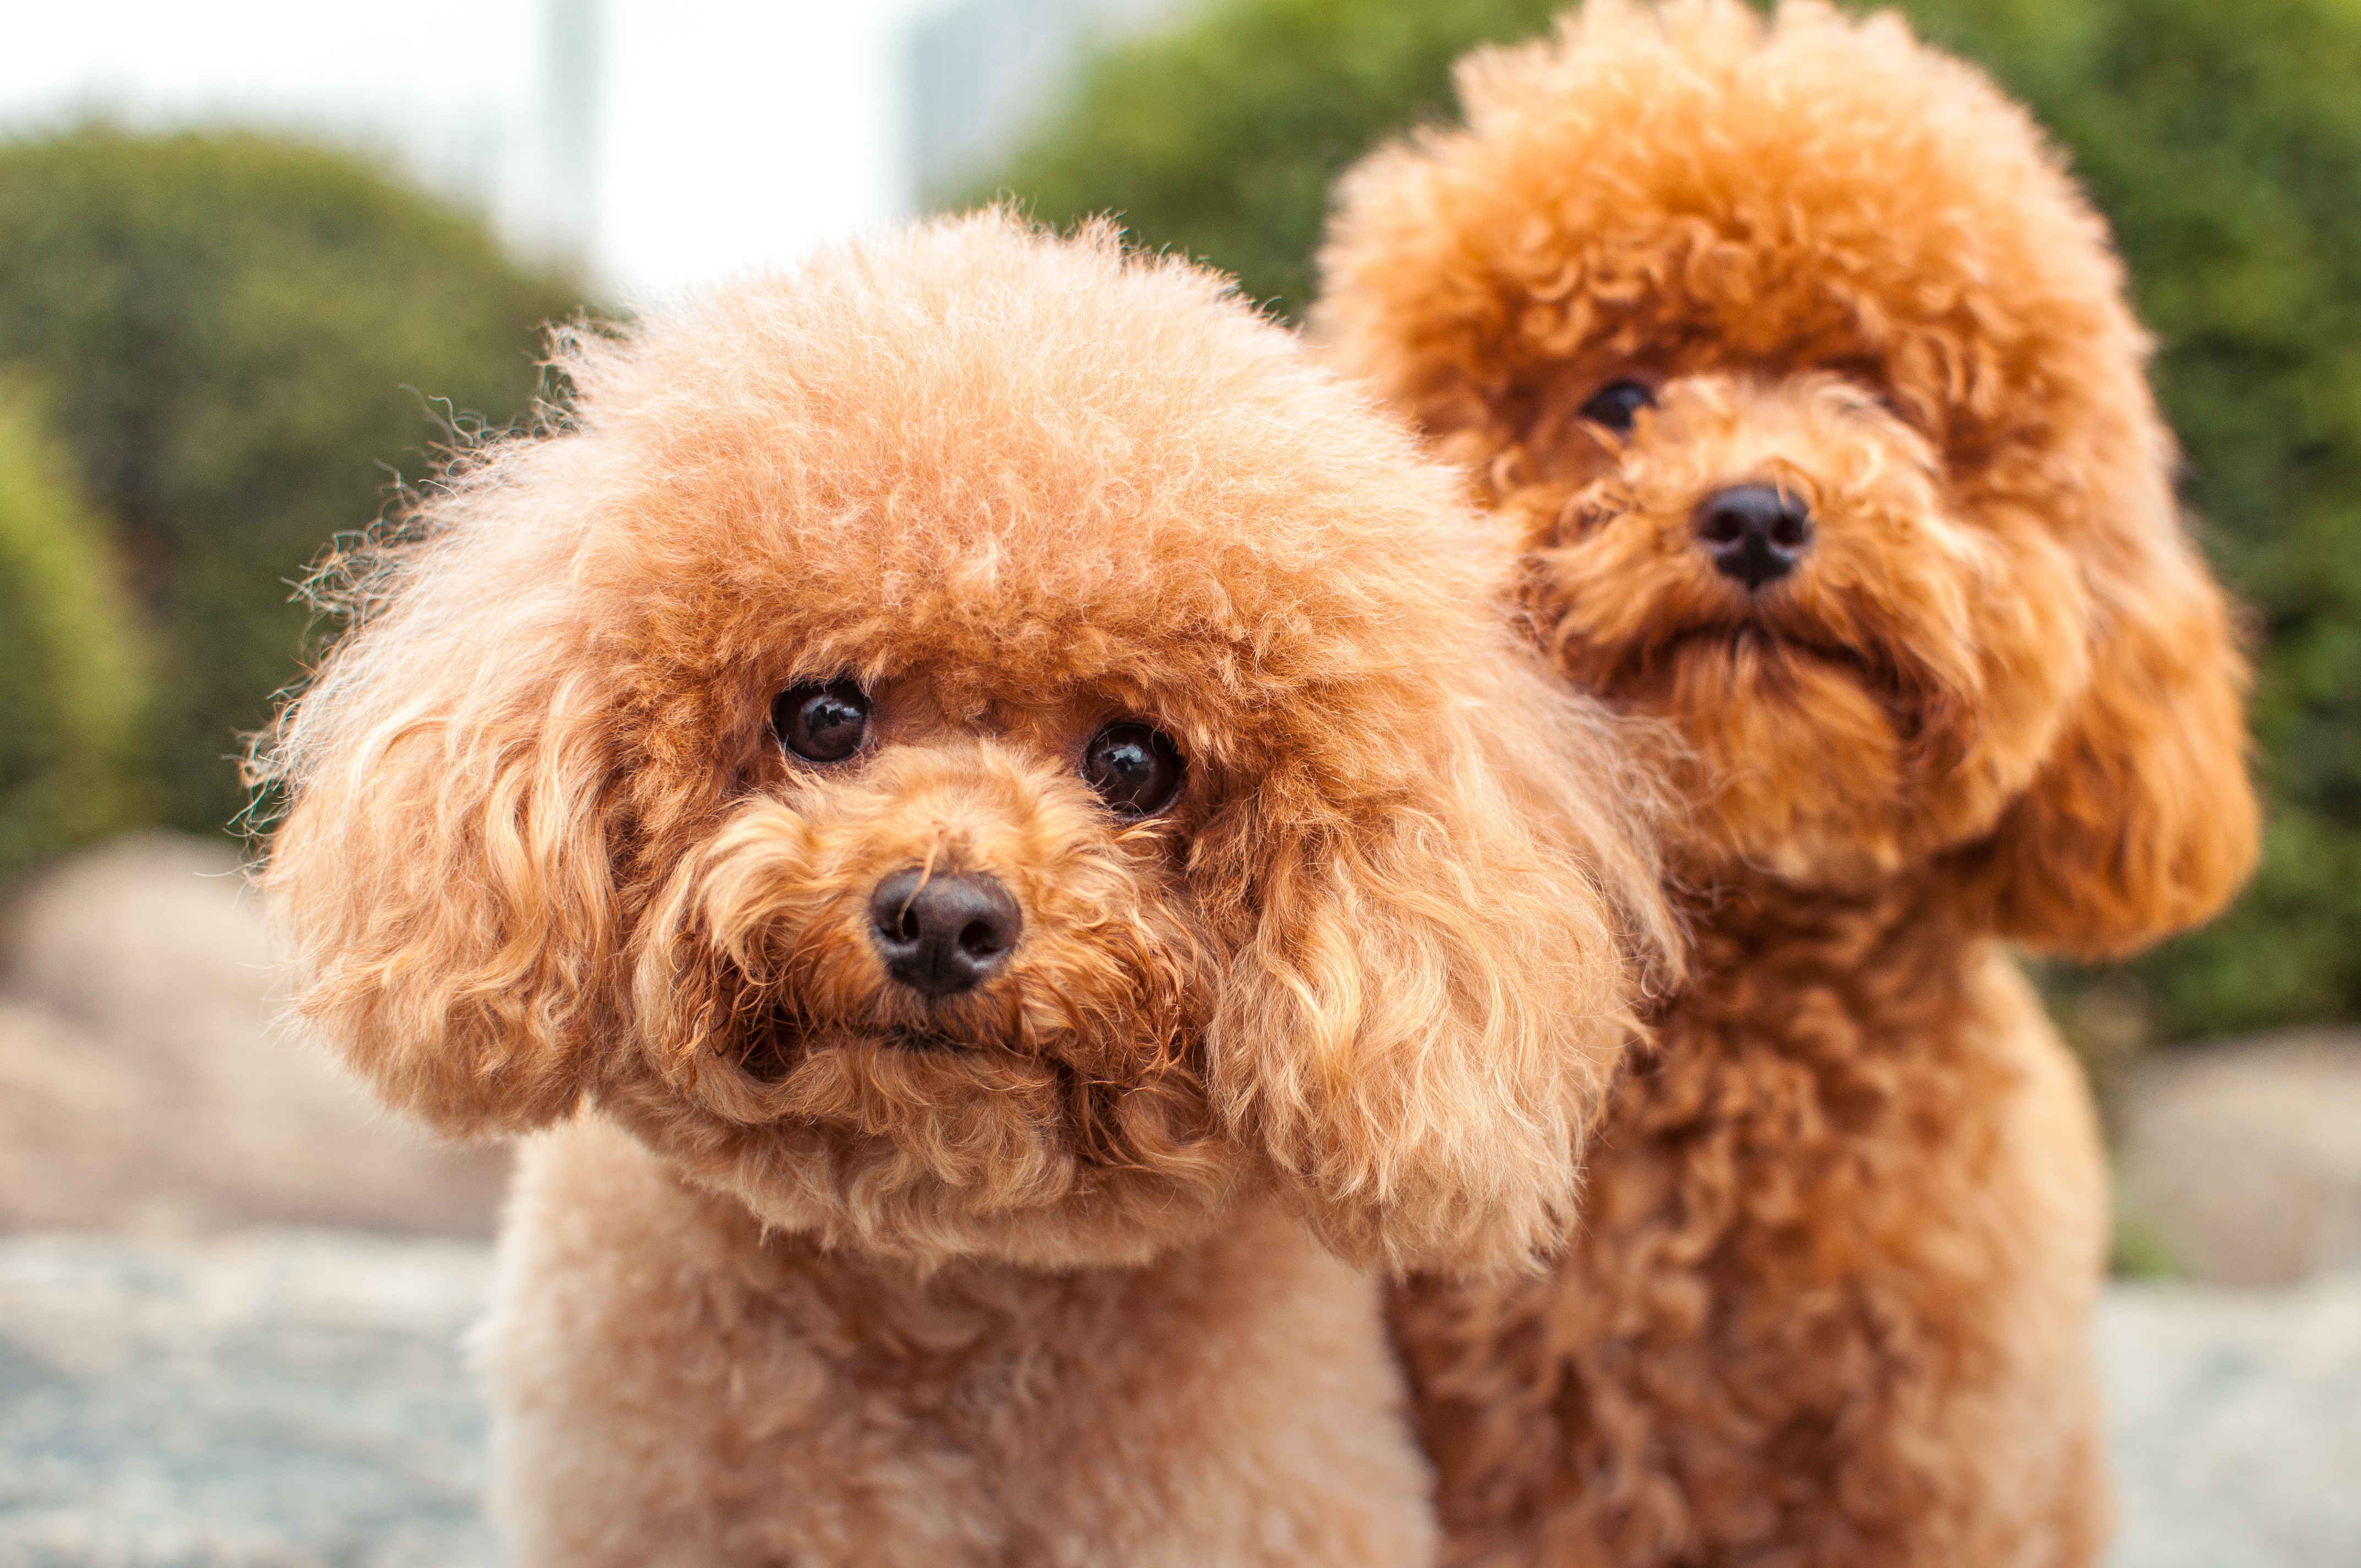 Dogs That Look Like Teddy Bears Poodles Pomeranians And More